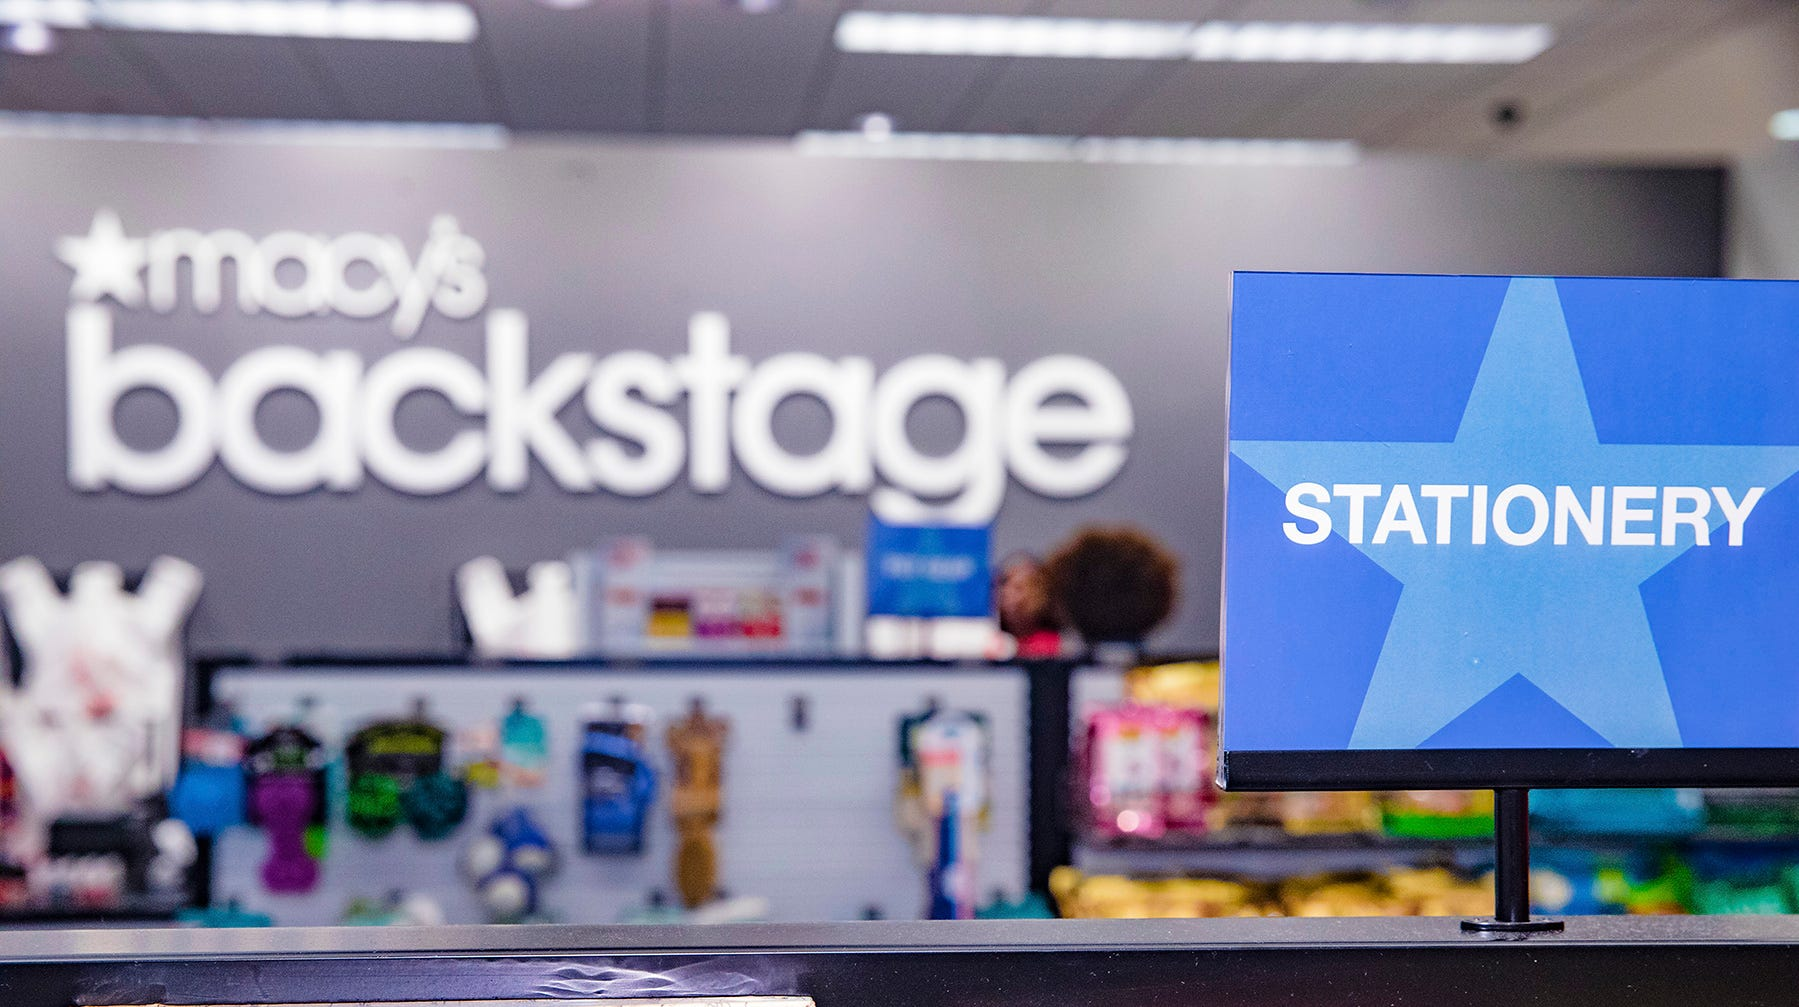 PHOTOS: Macy's Backstage opens at Menlo Park Mall in Edison